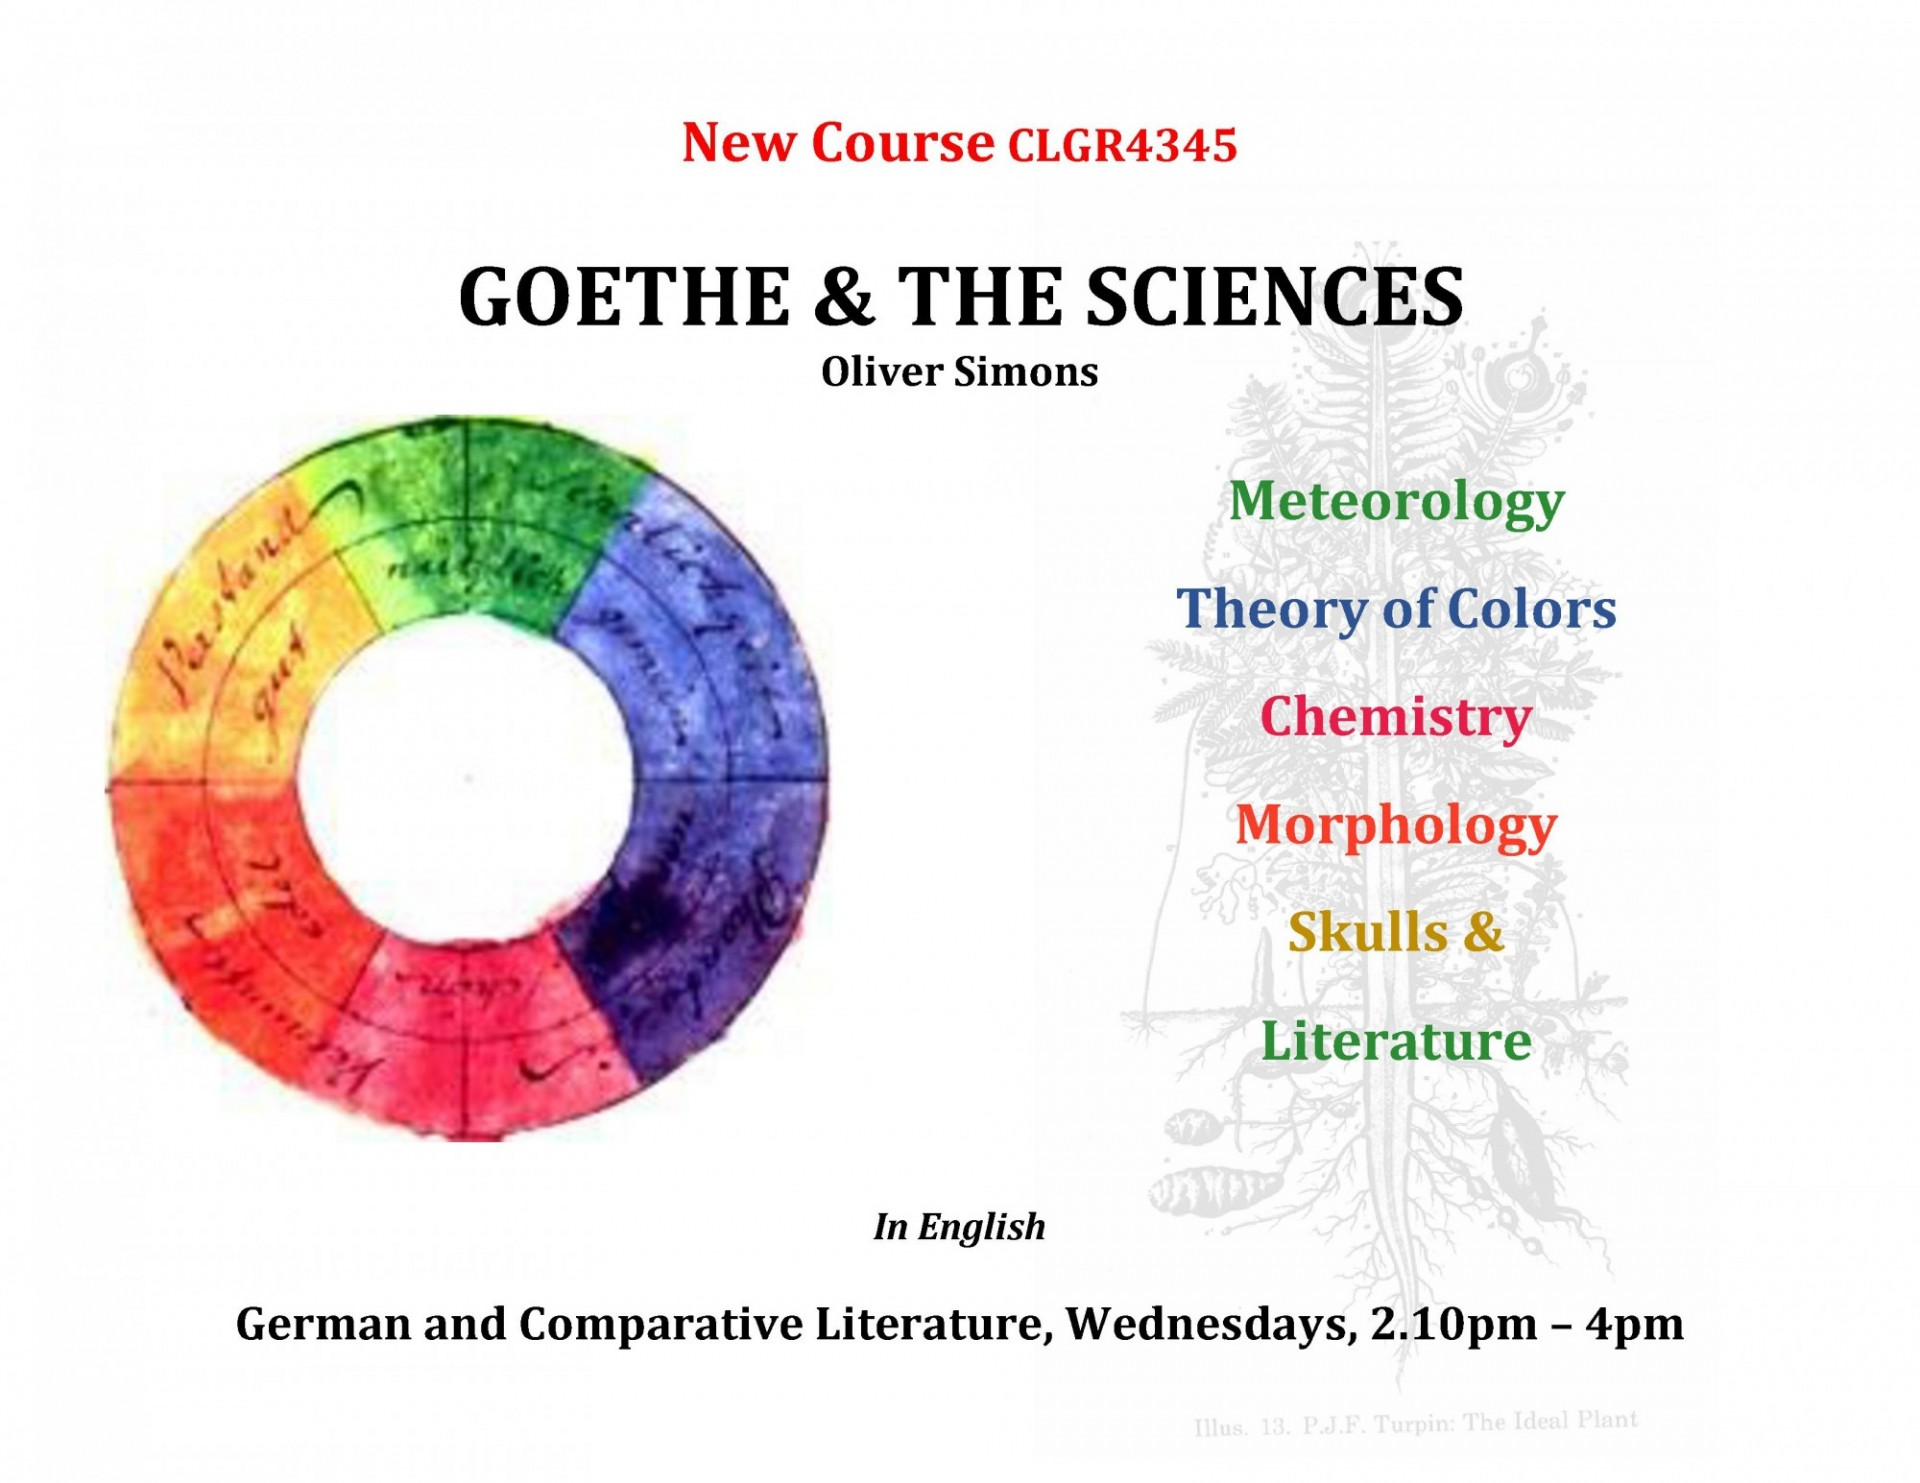 Goethe and the Sciences Course Poster